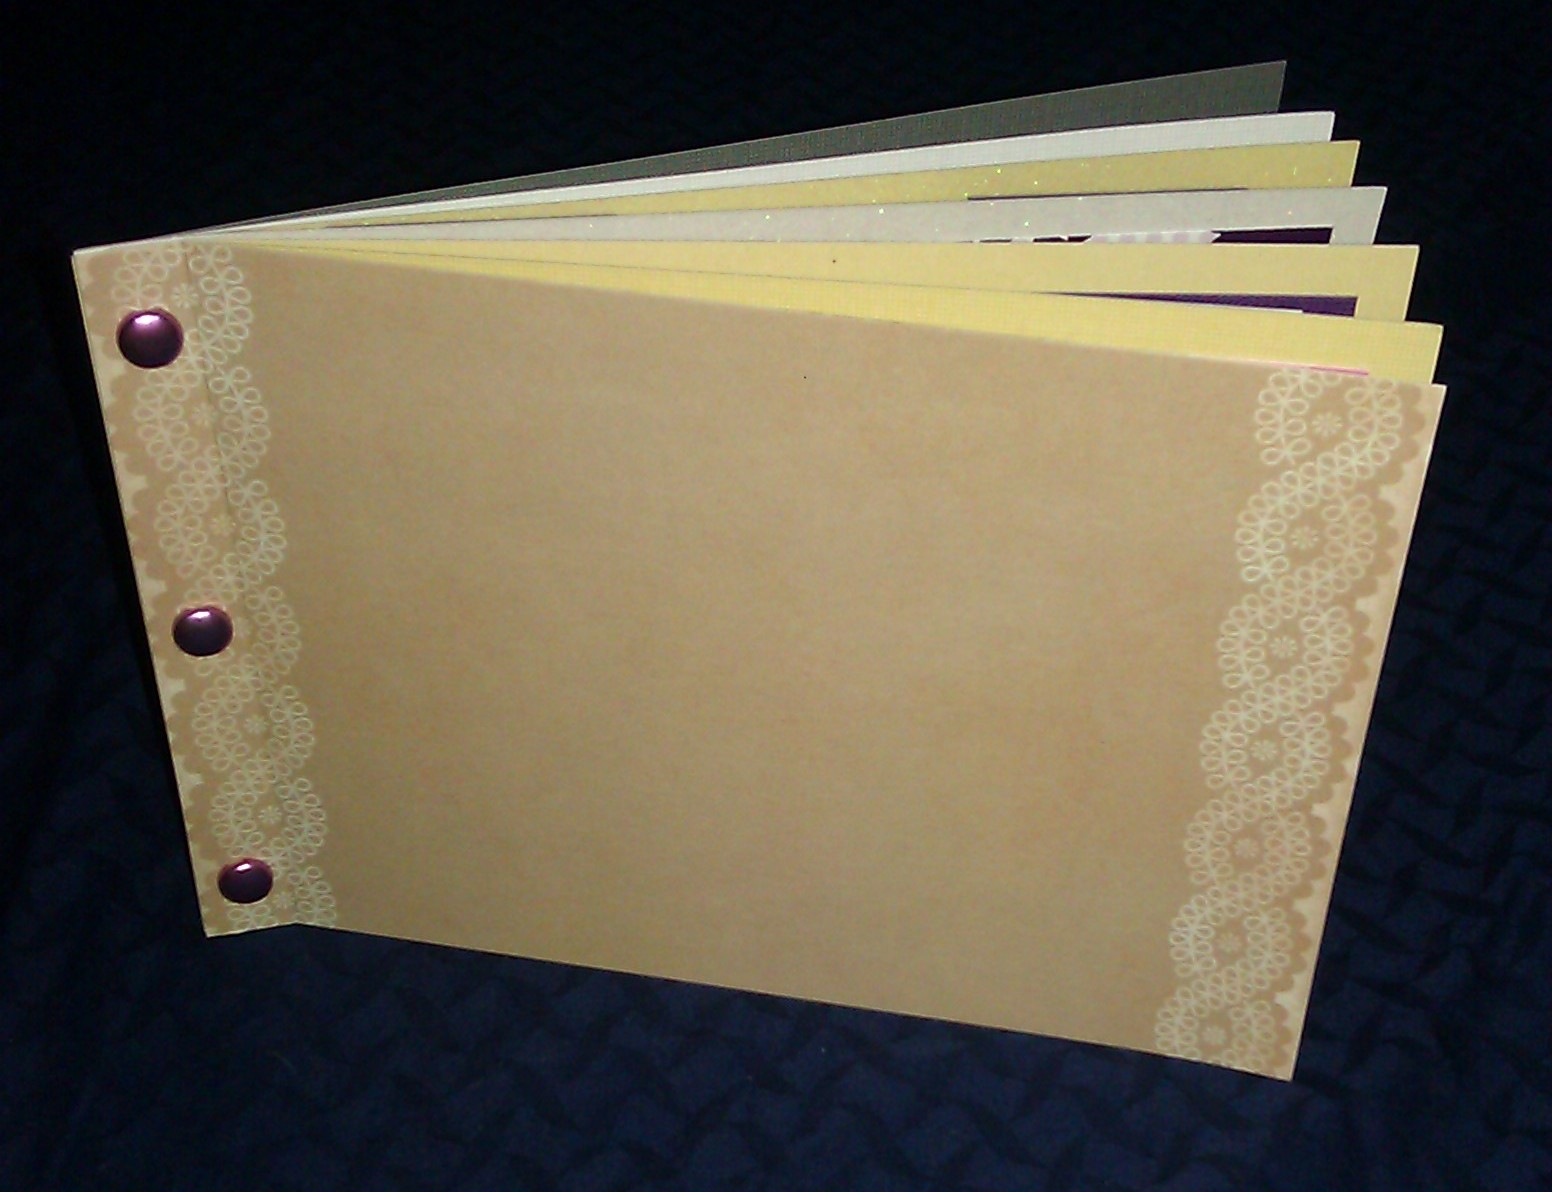 How to make scrapbook simple - This Tutorial Will Teach You How To Make A 5 Page Mini Album Or Scrapbook Album Out Of Cardstock Paper Just Follow The Simple Steps And You Will Have An